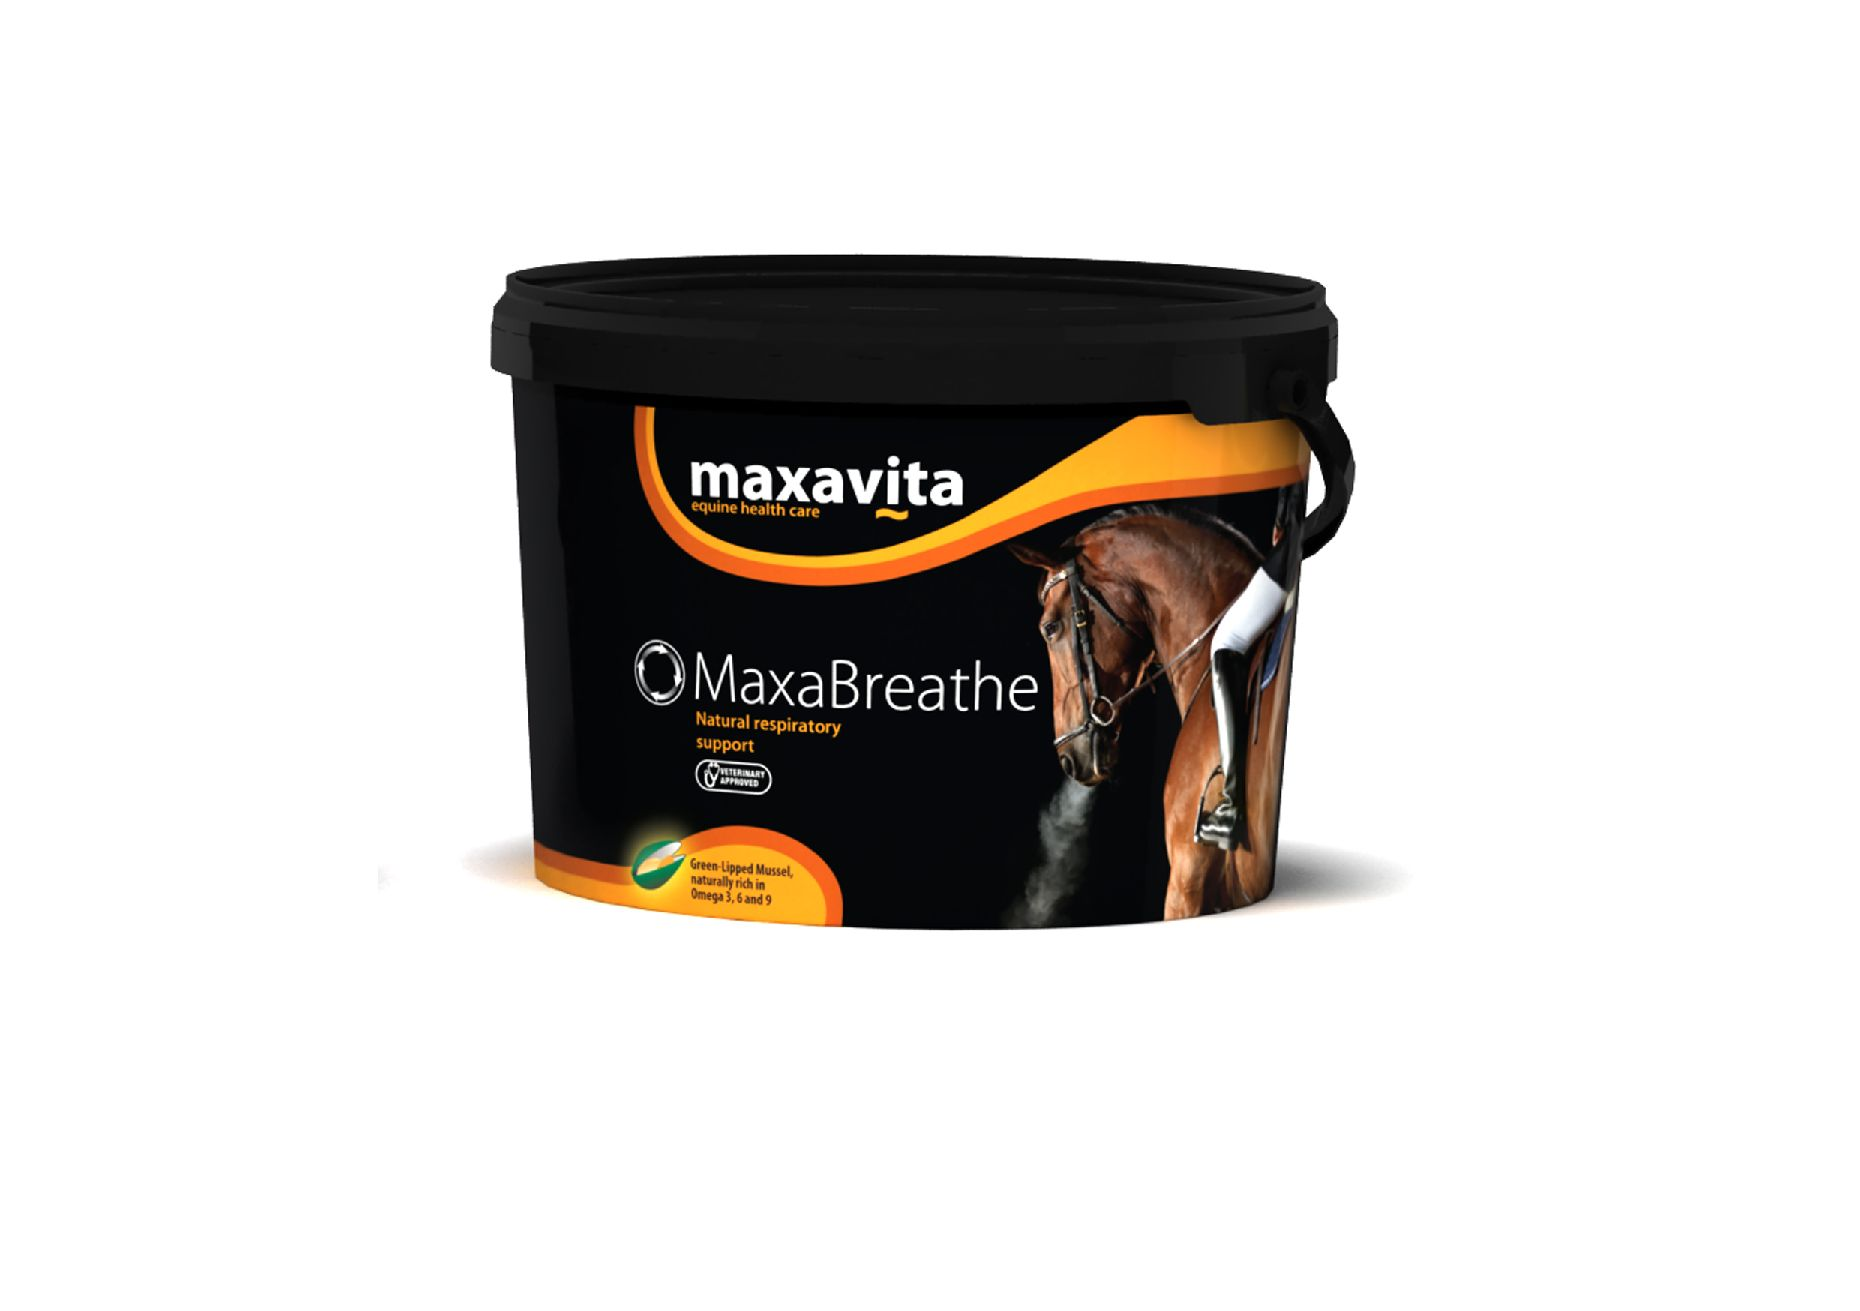 MaxaVita MaxaBreathe for Horses